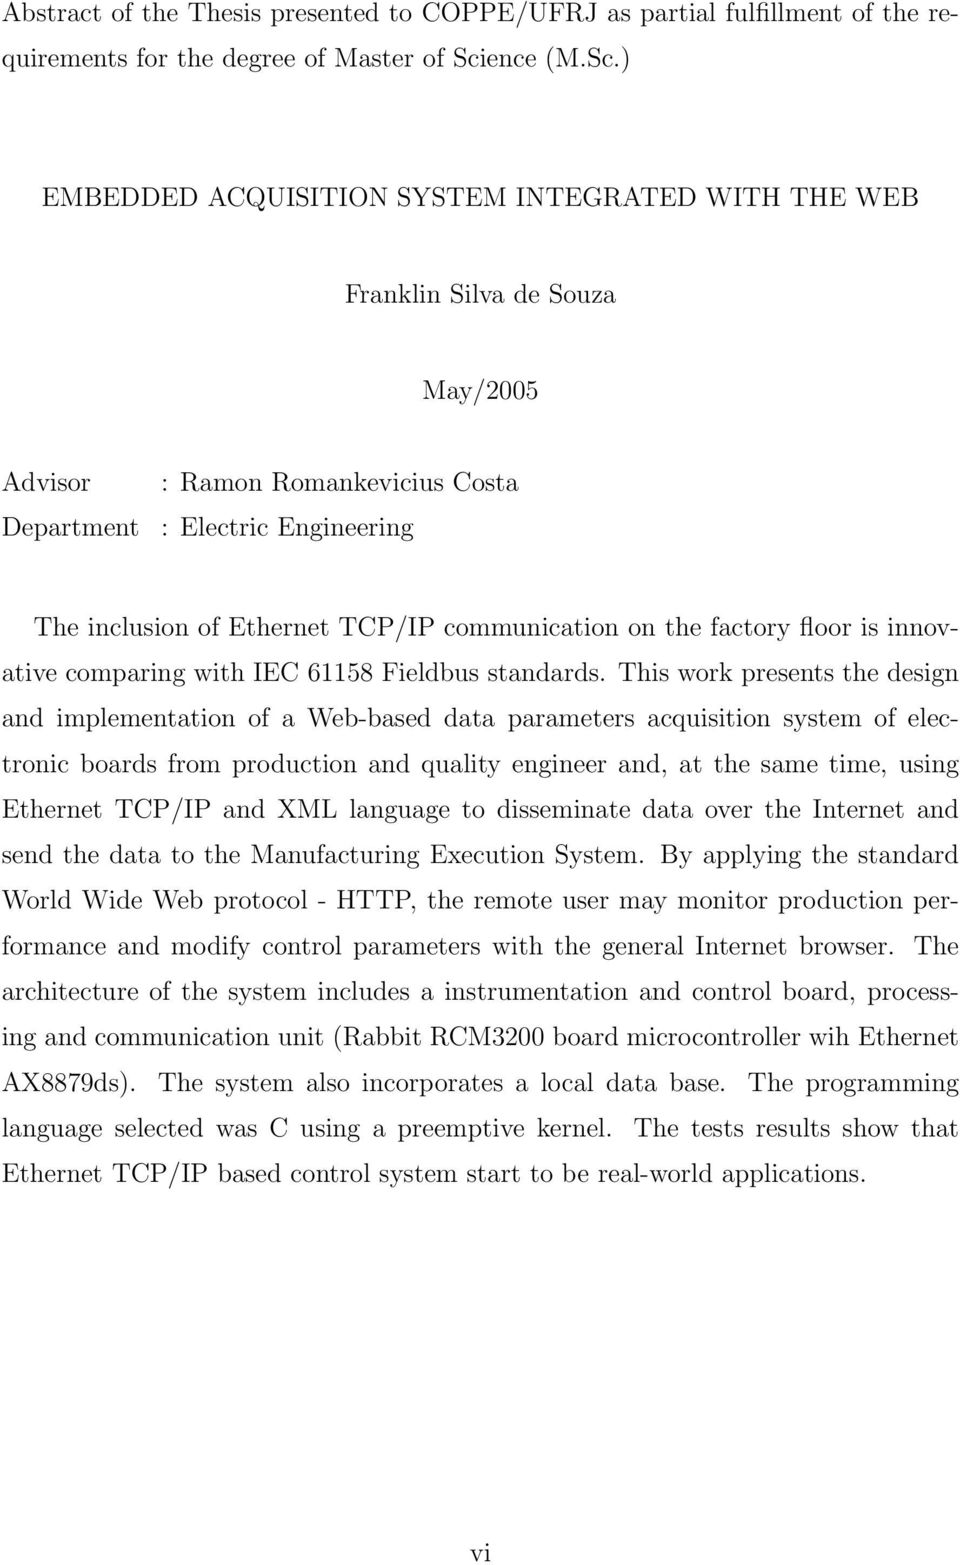 ) EMBEDDED ACQUISITION SYSTEM INTEGRATED WITH THE WEB Franklin Silva de Souza May/2005 Advisor Department : Ramon Romankevicius Costa : Electric Engineering The inclusion of Ethernet TCP/IP